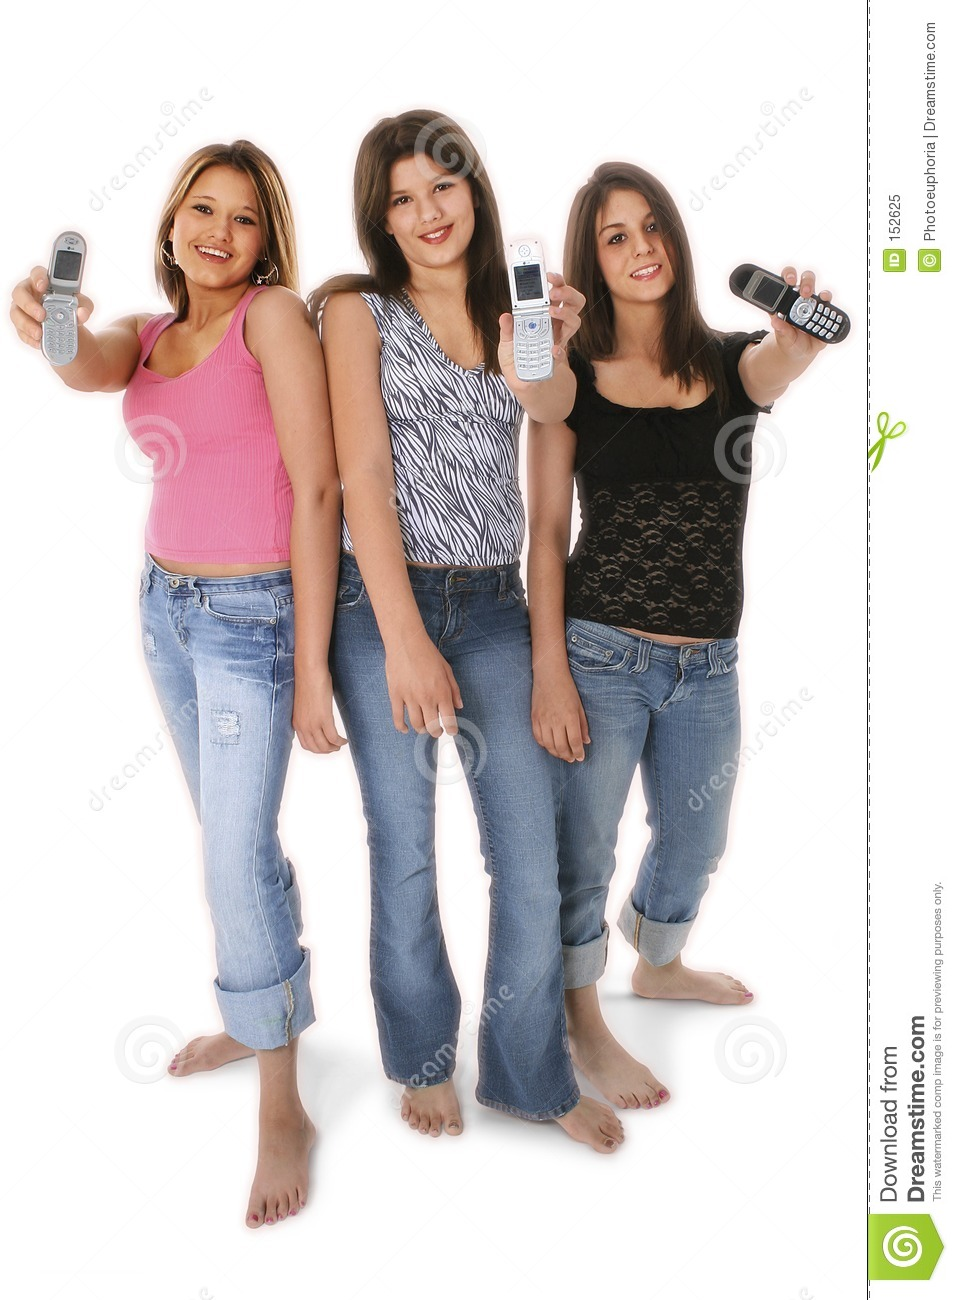 Three Teen Girls With Cellphones Over White